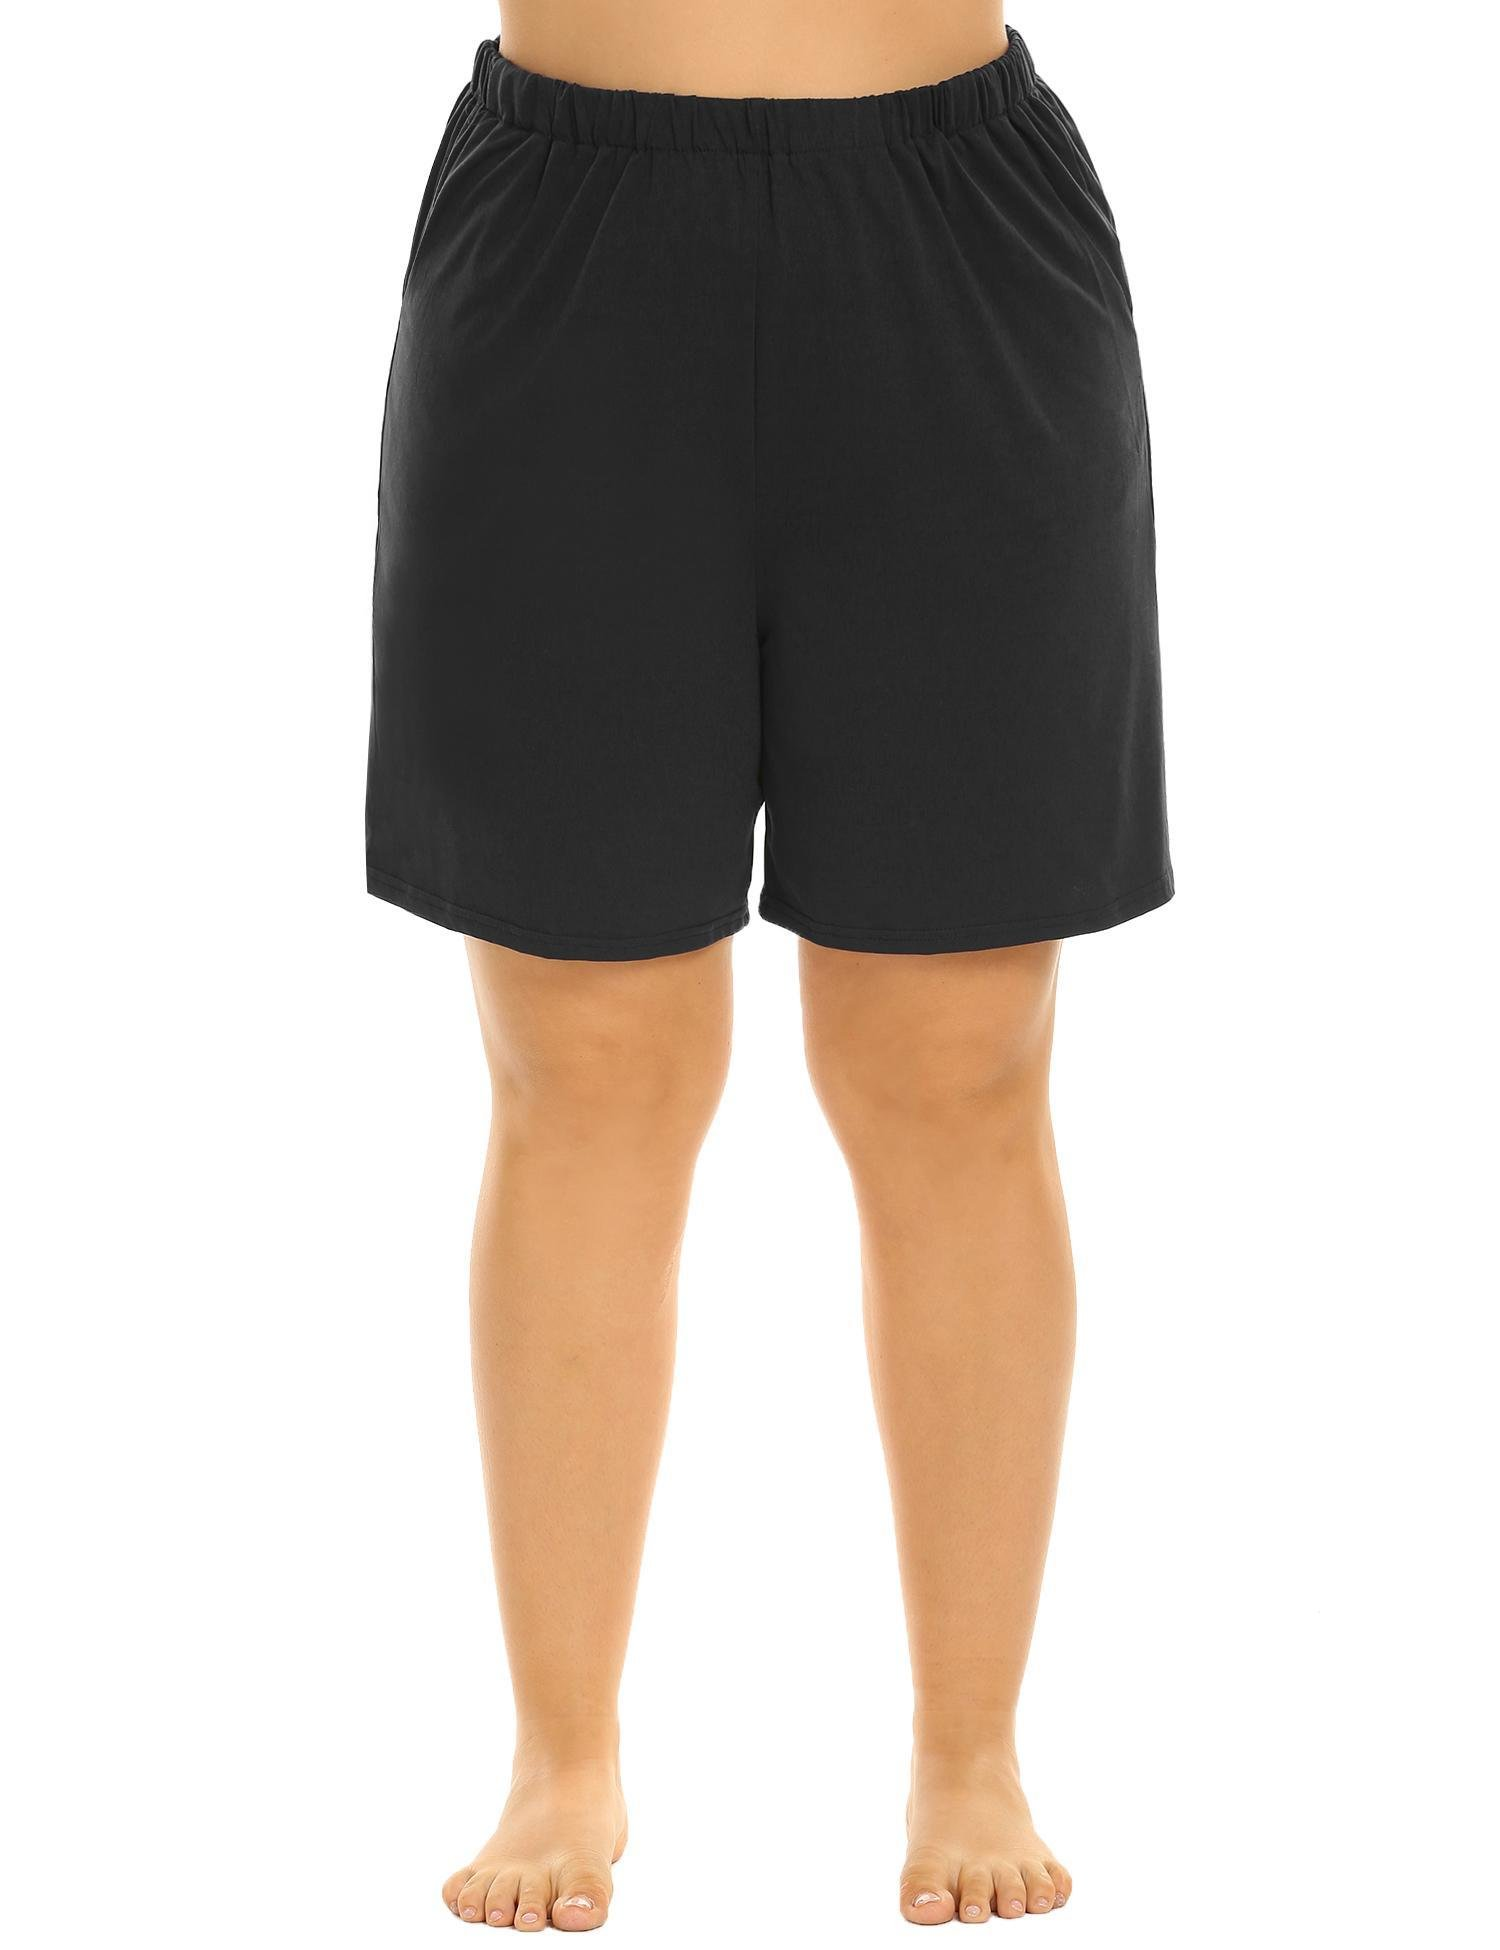 IN'VOLAND Women's Plus Size Soft Sleep Pajama Shorts